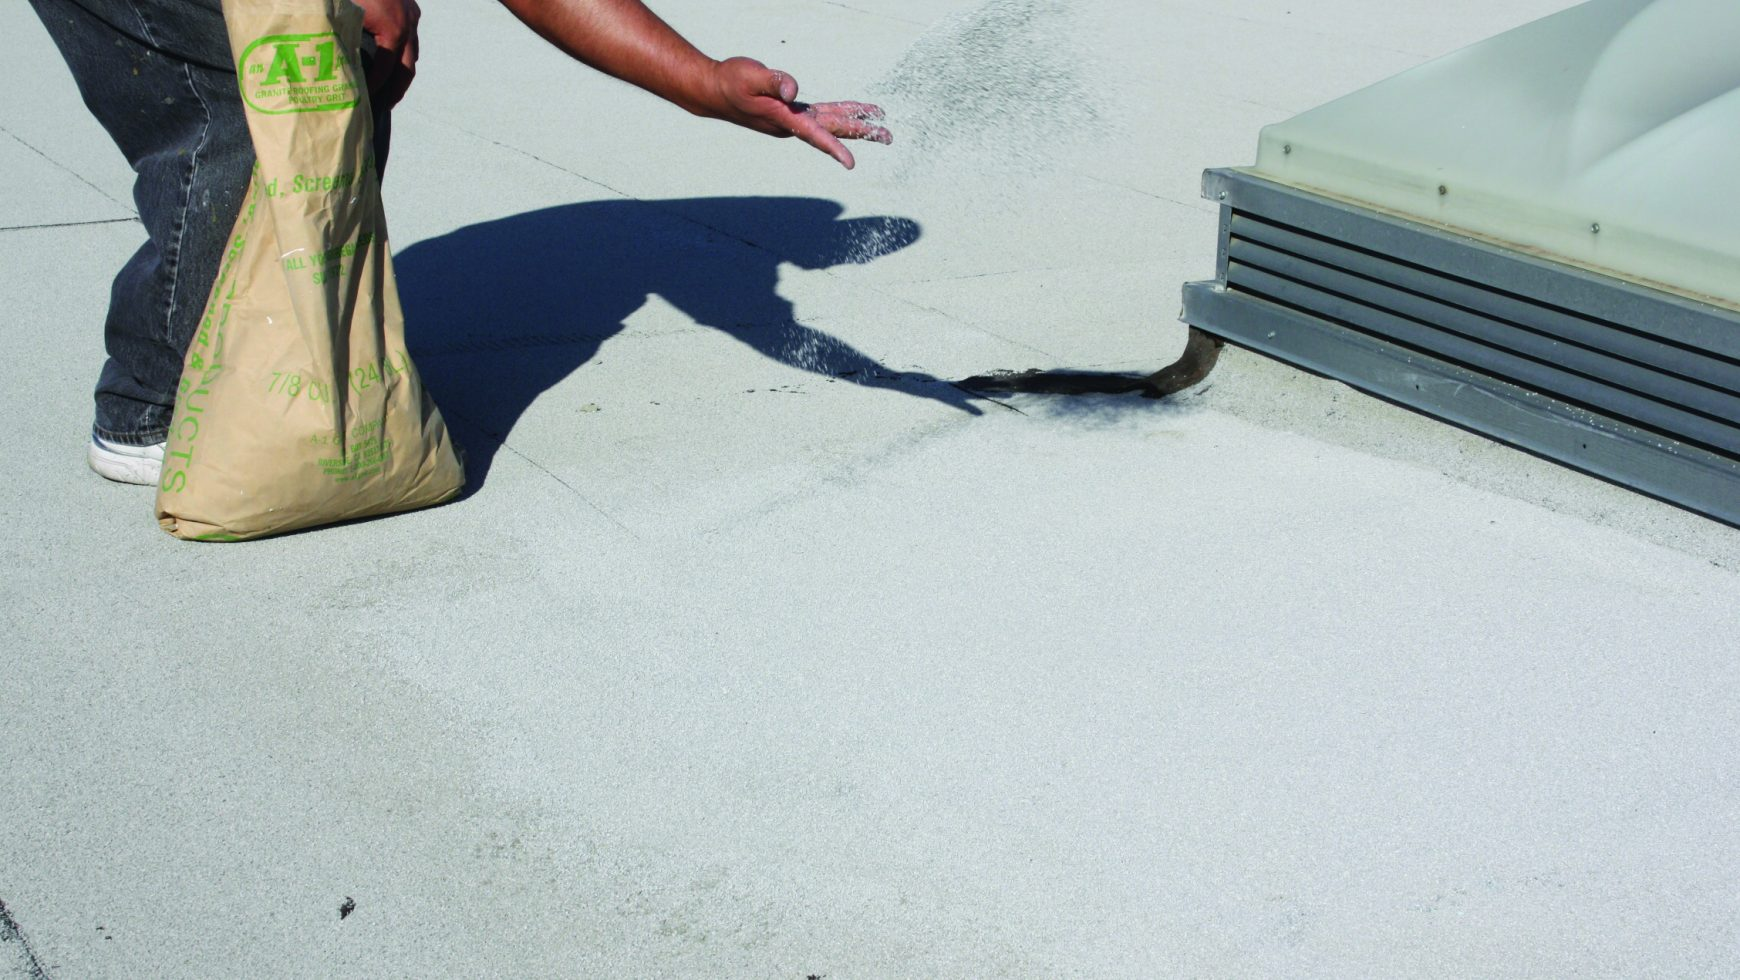 Roofing Granules & Their Role on Flat Commercial Roofs